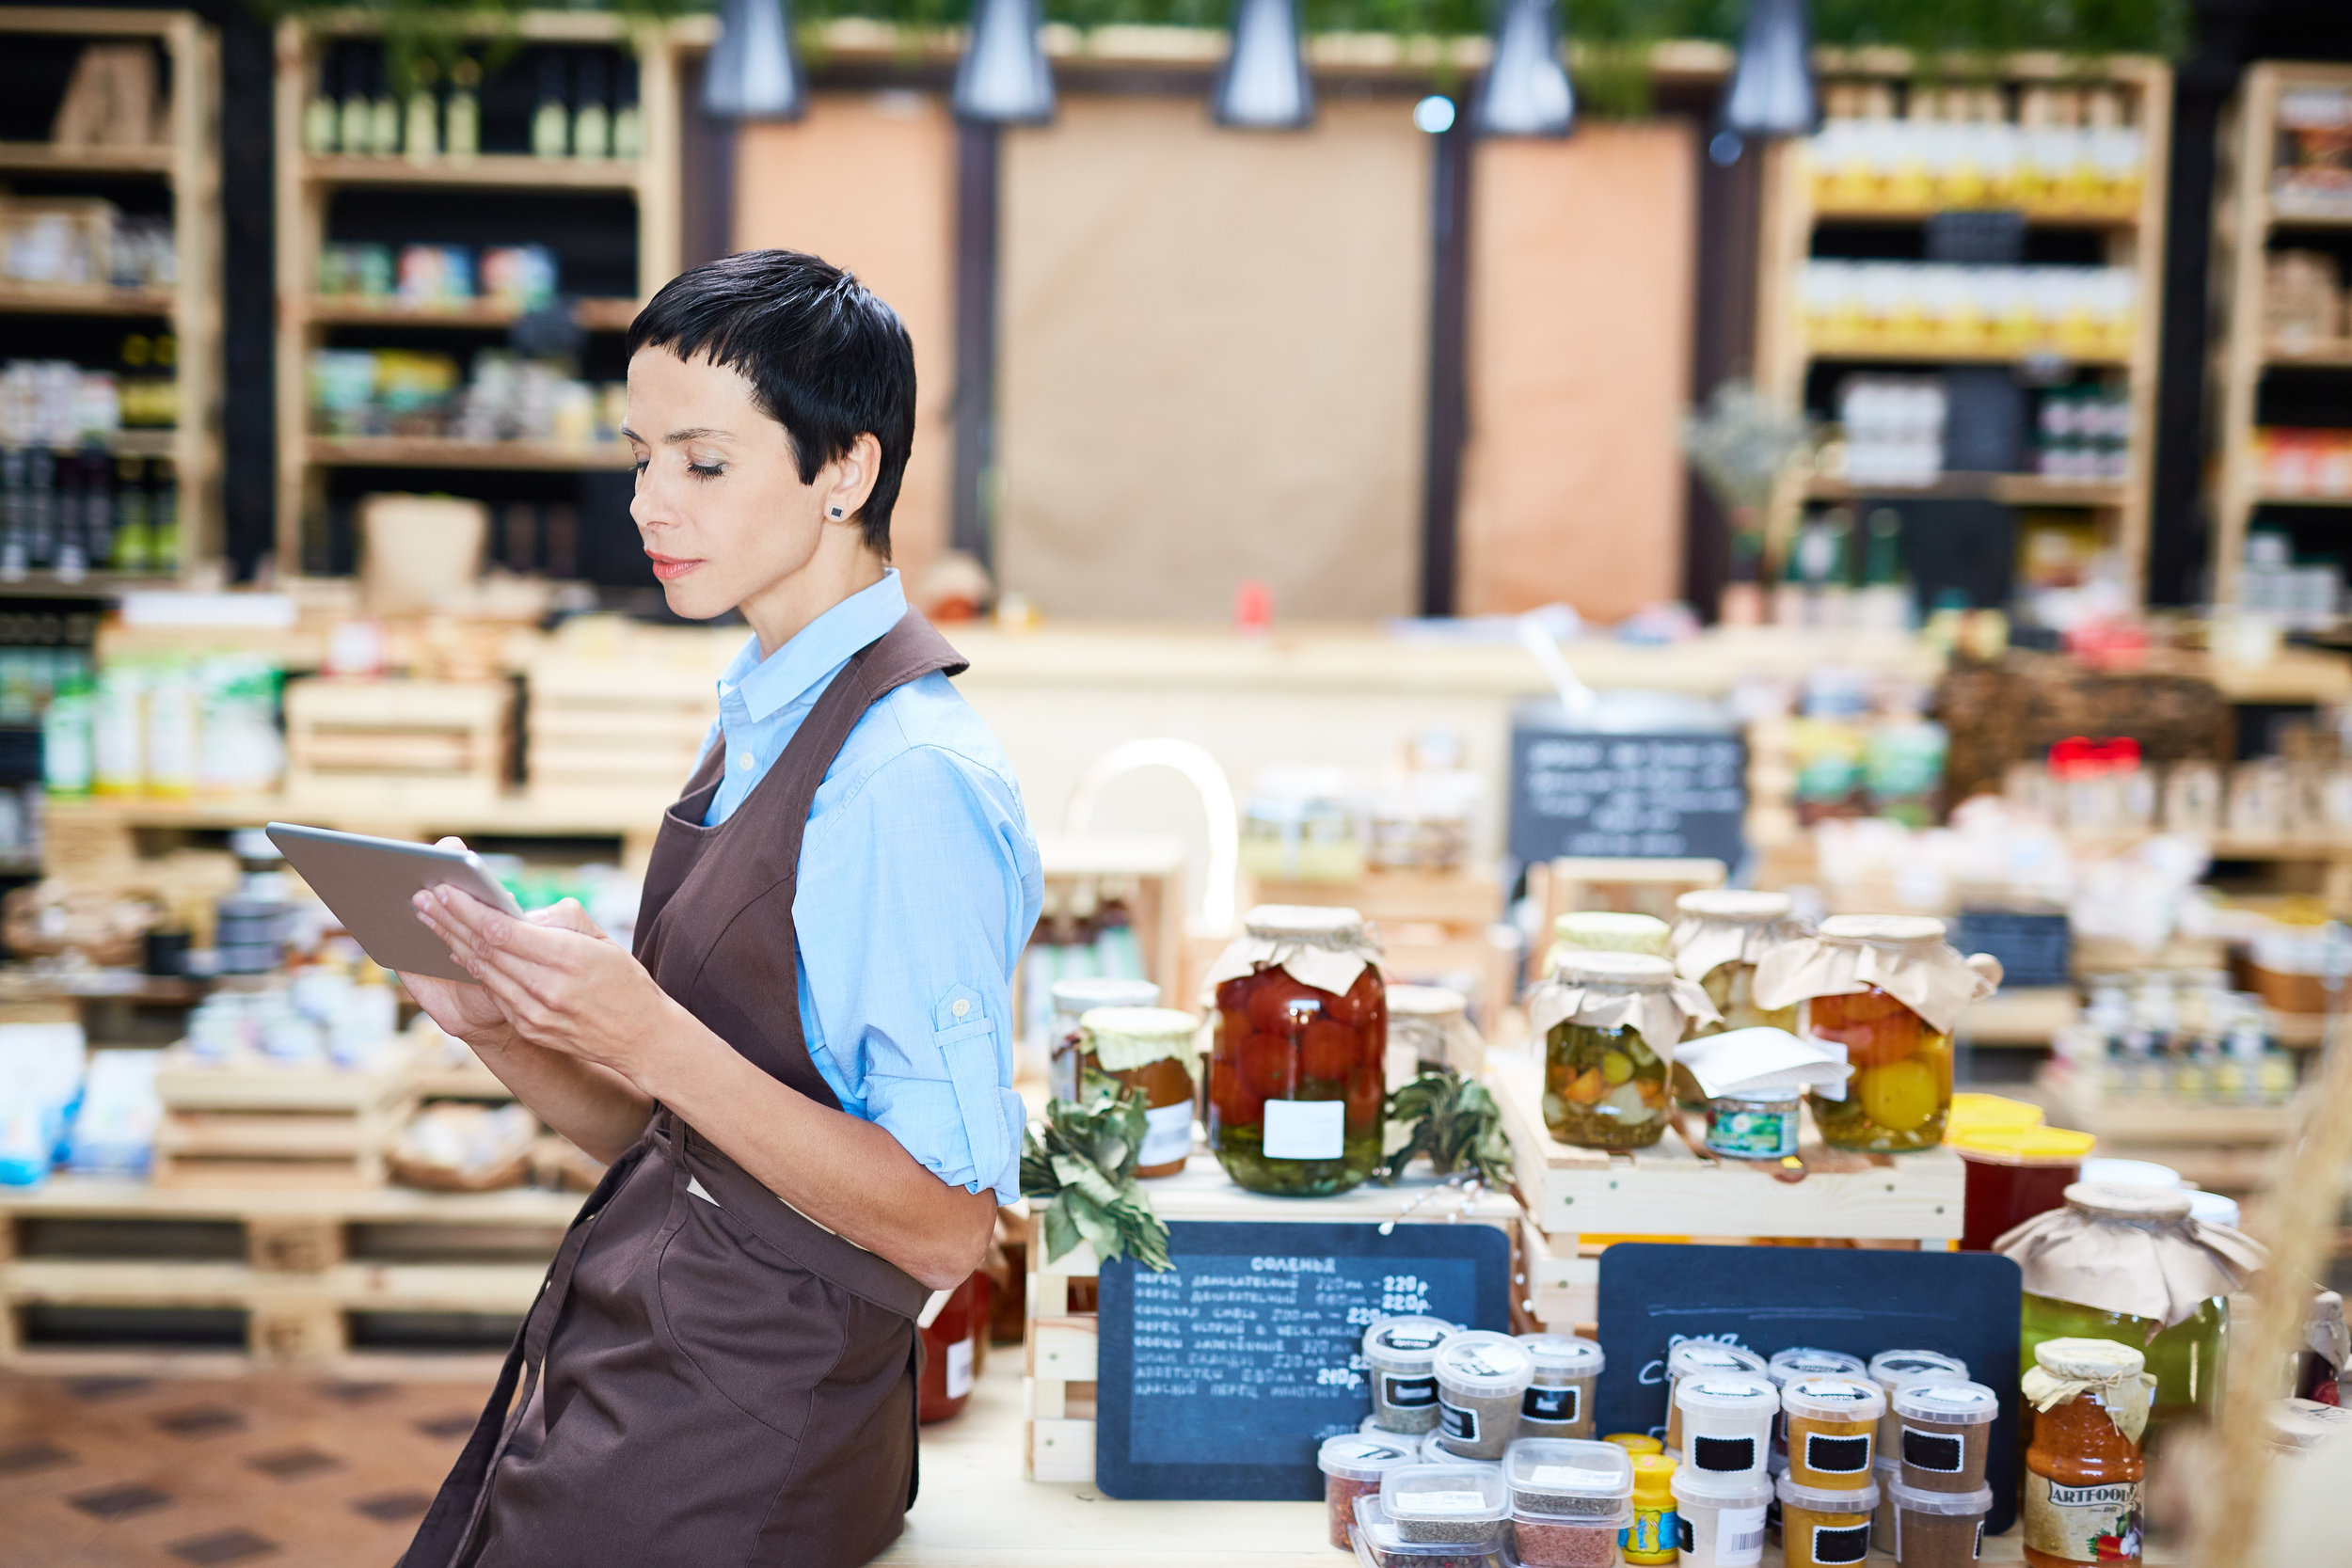 A popular organic consumer brand needed help determining how to move into new retailers. -